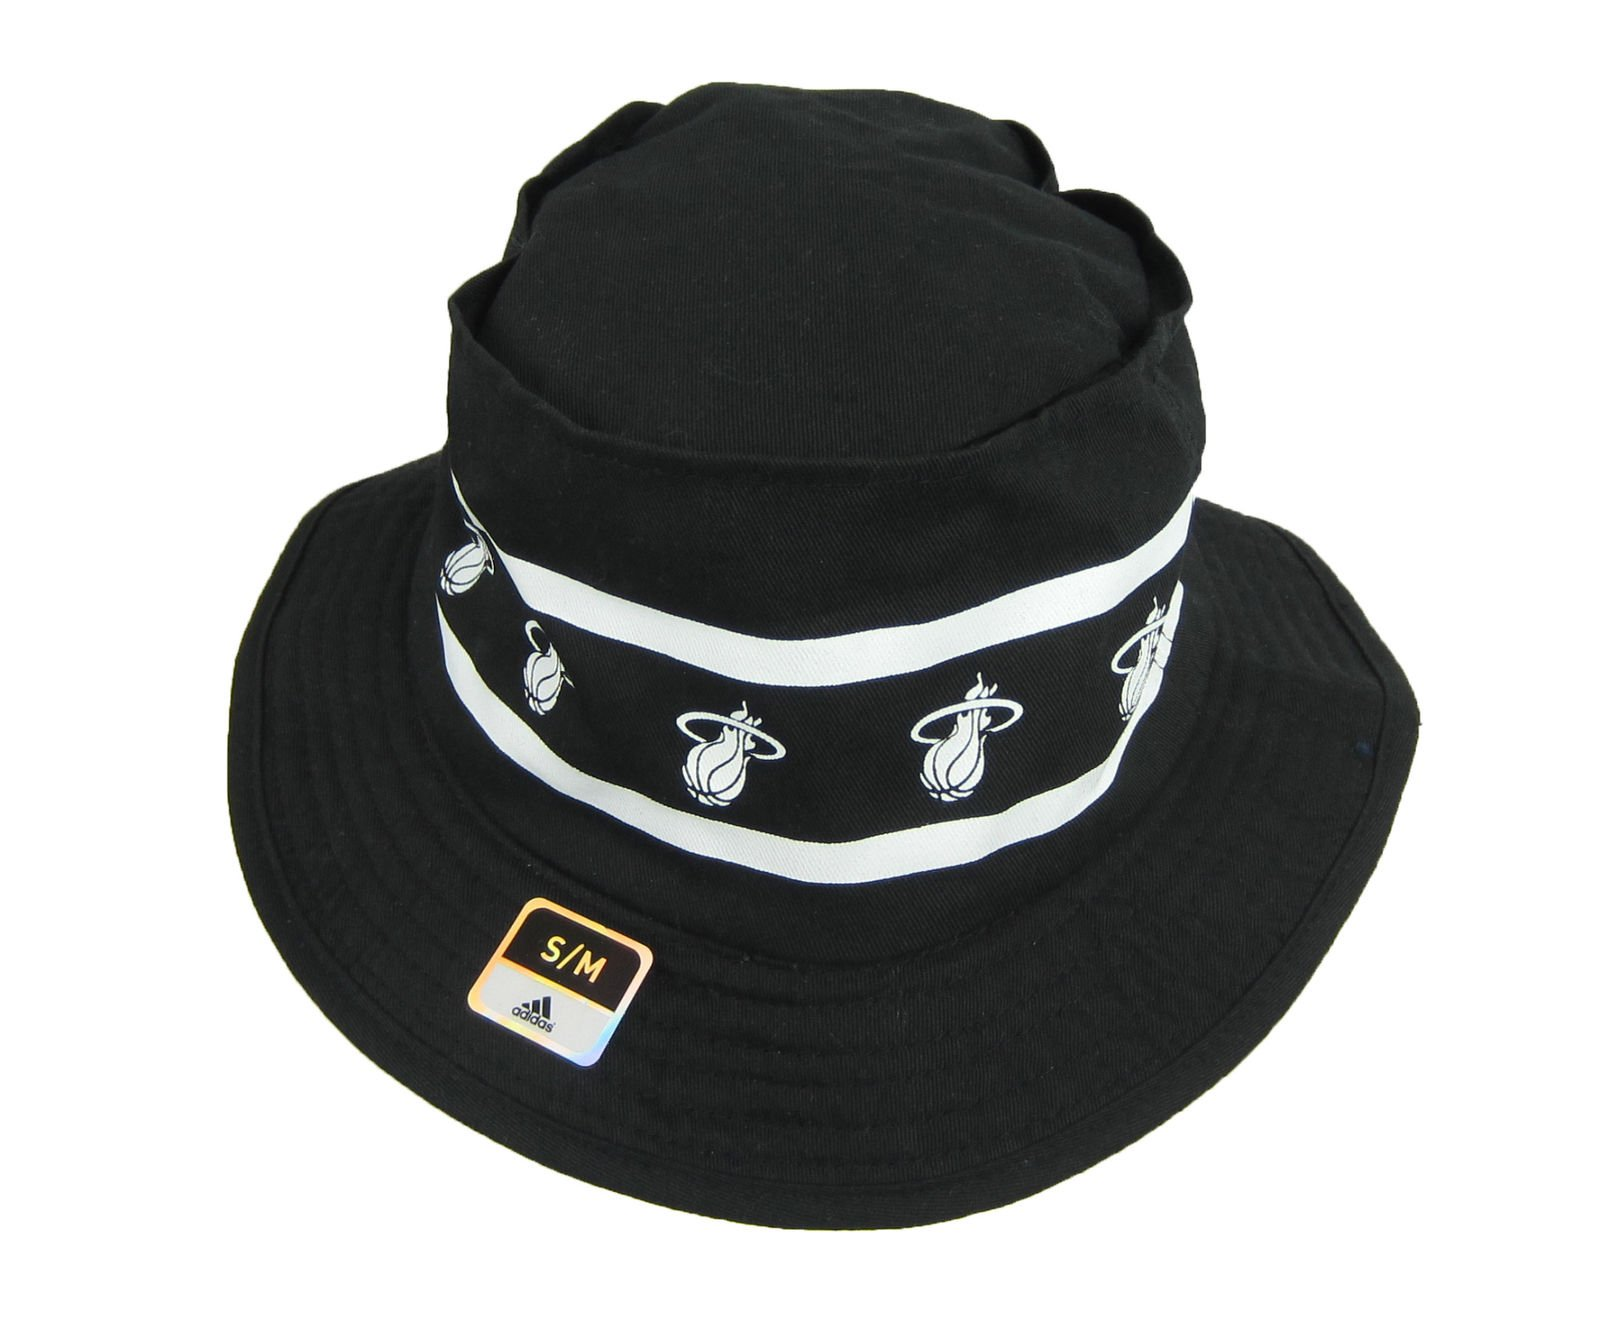 f96309d6634 Adidas NBA Miami Heat Size Small Bucket Hat Black And White ...